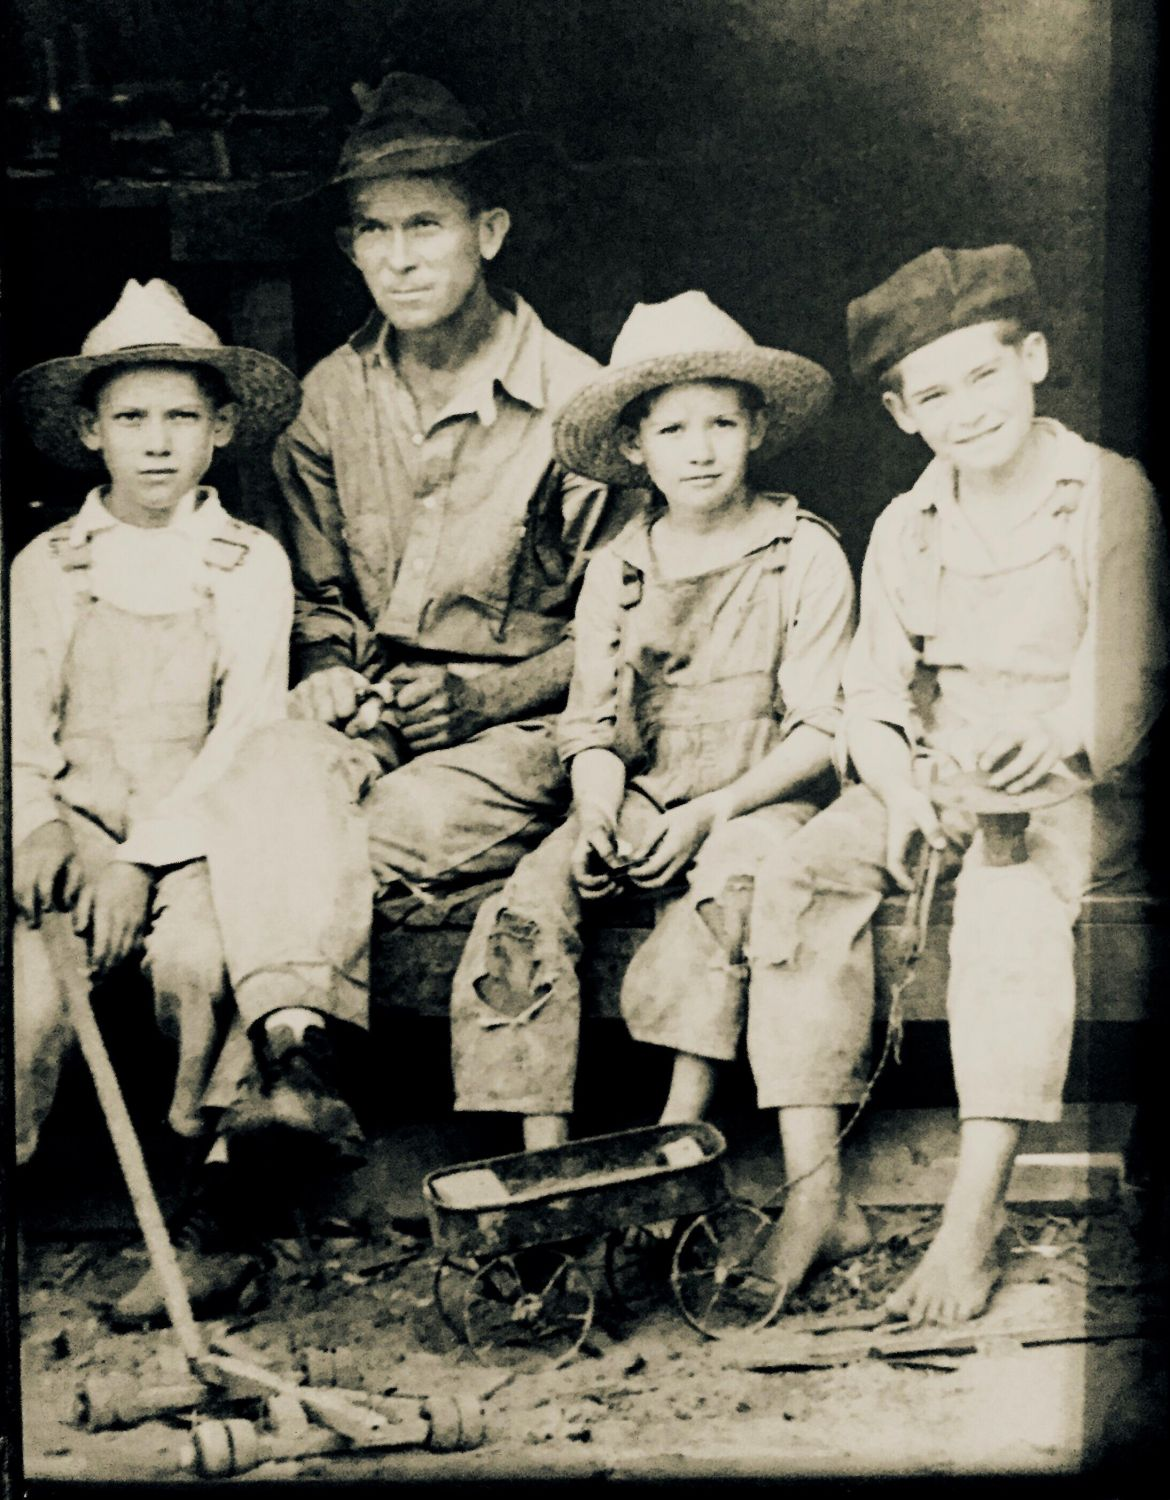 Visible mending on a kid's trousers from the Great Depression